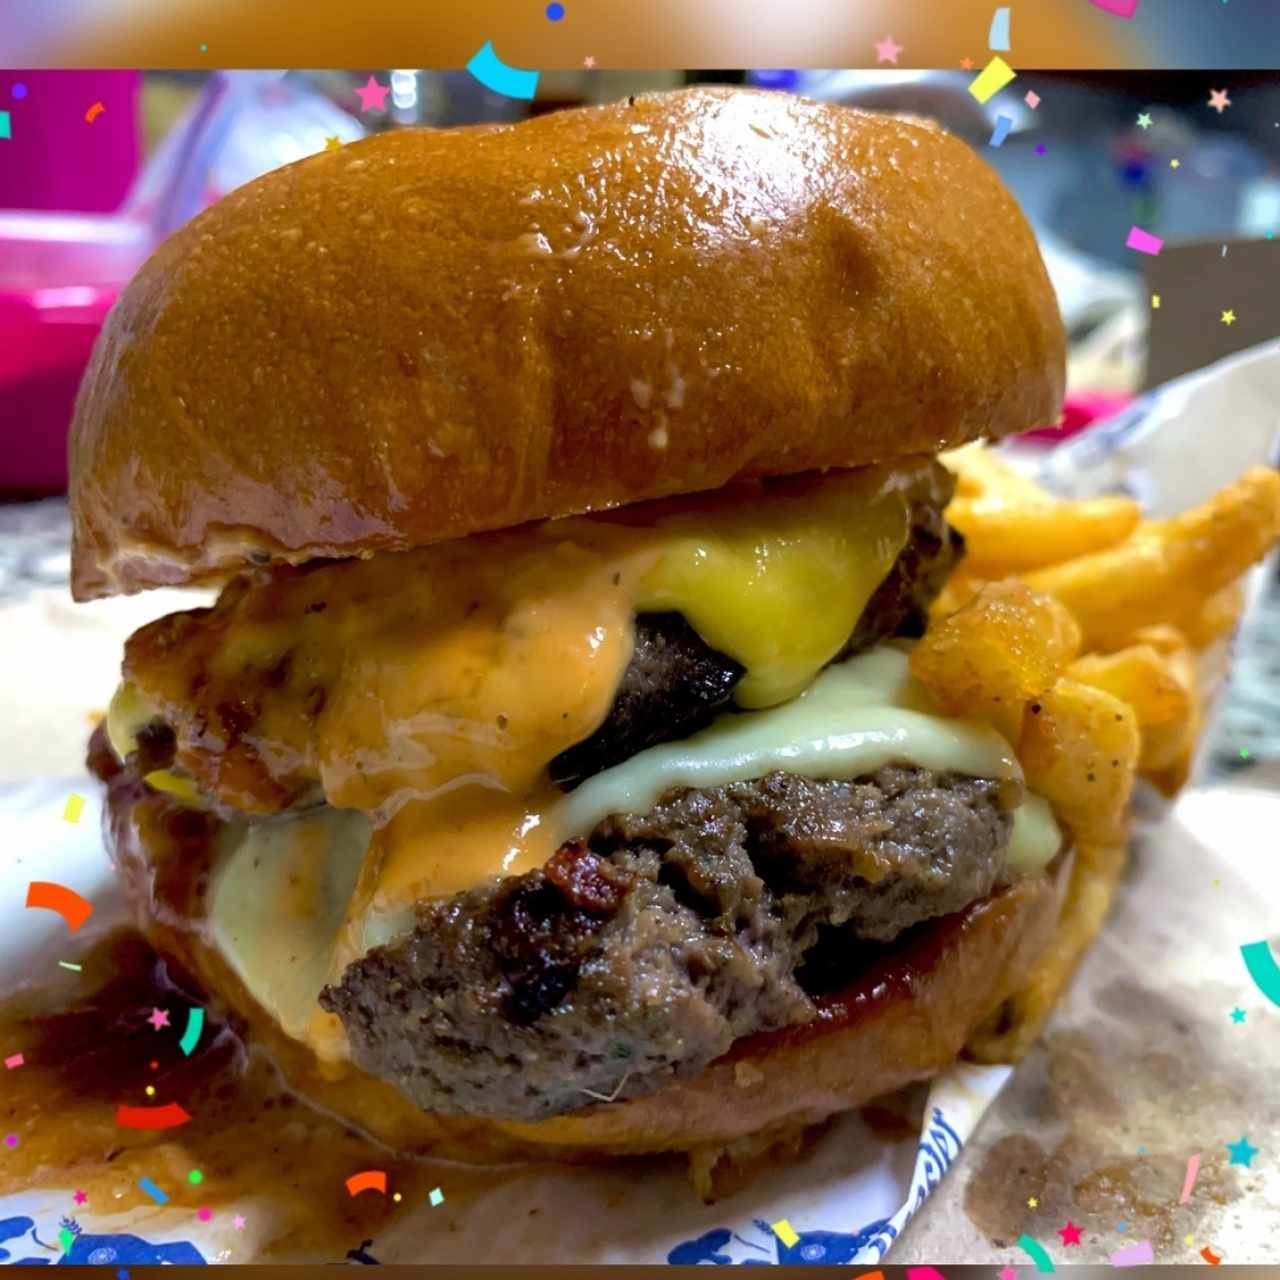 La Mitrallette del Burger Week